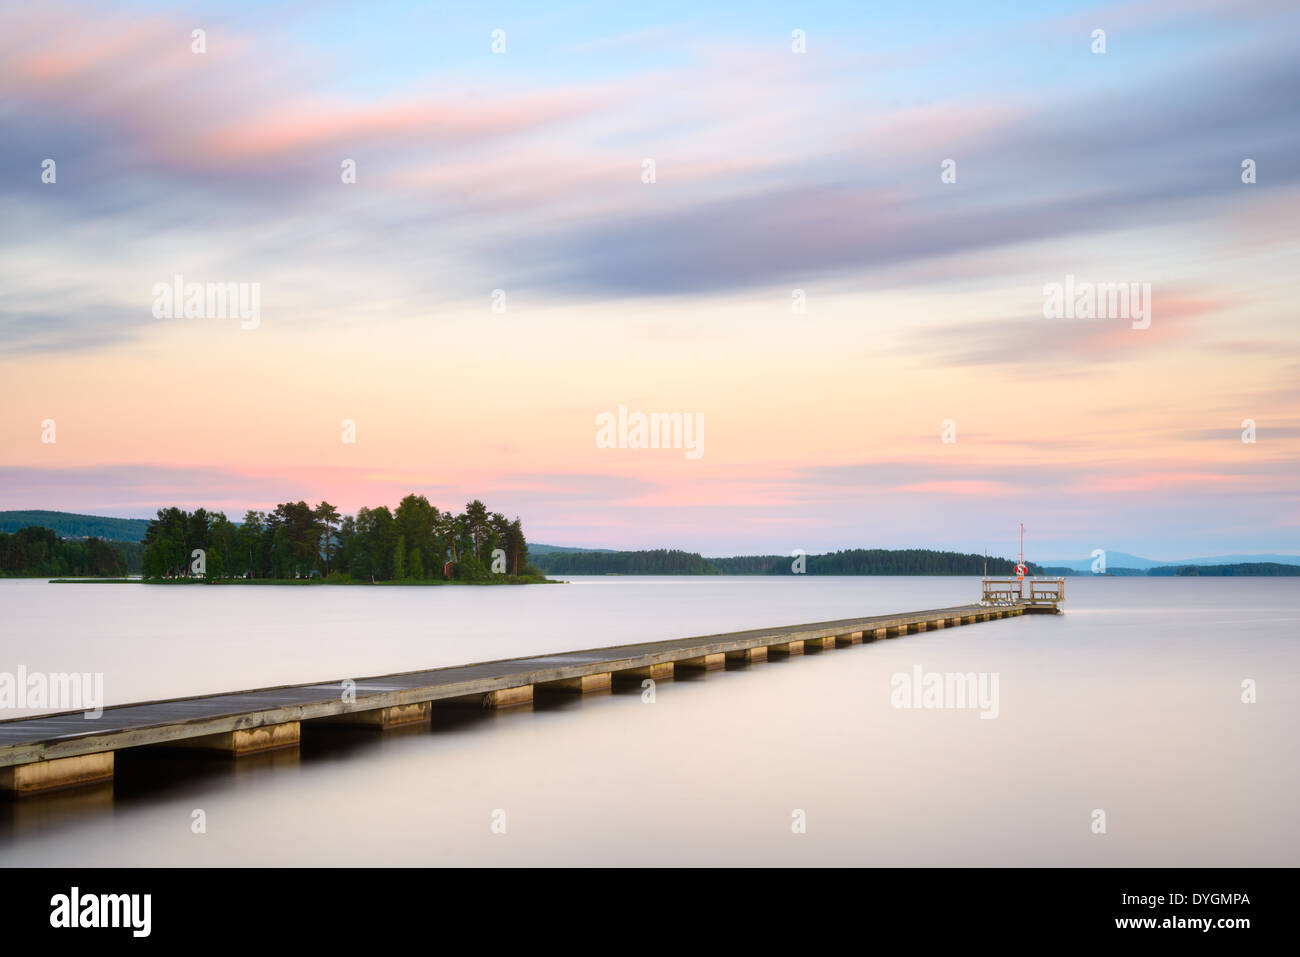 Jetty on the lake, Orsa Lake, Dalarna, Sweden - Stock Image